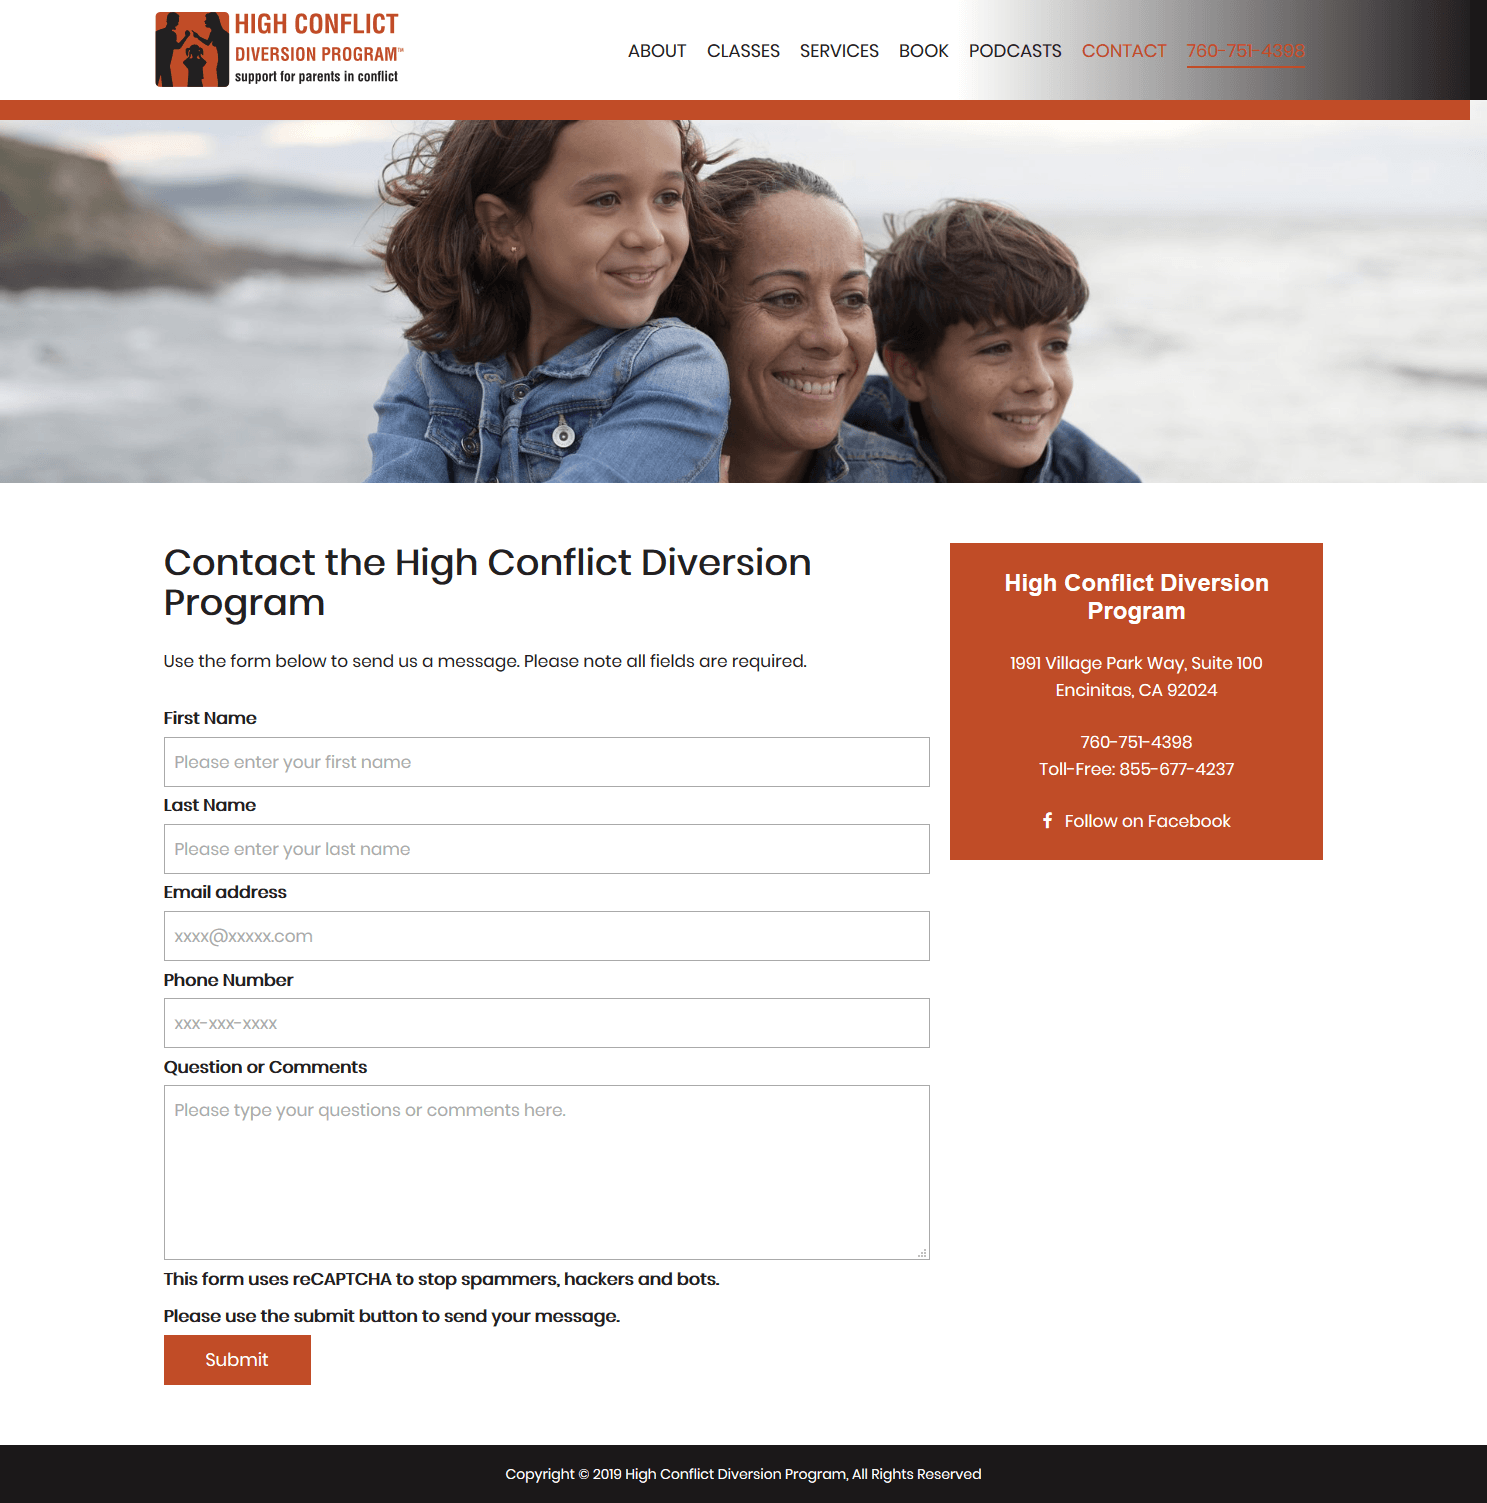 High Conflict Diversion Program Contact